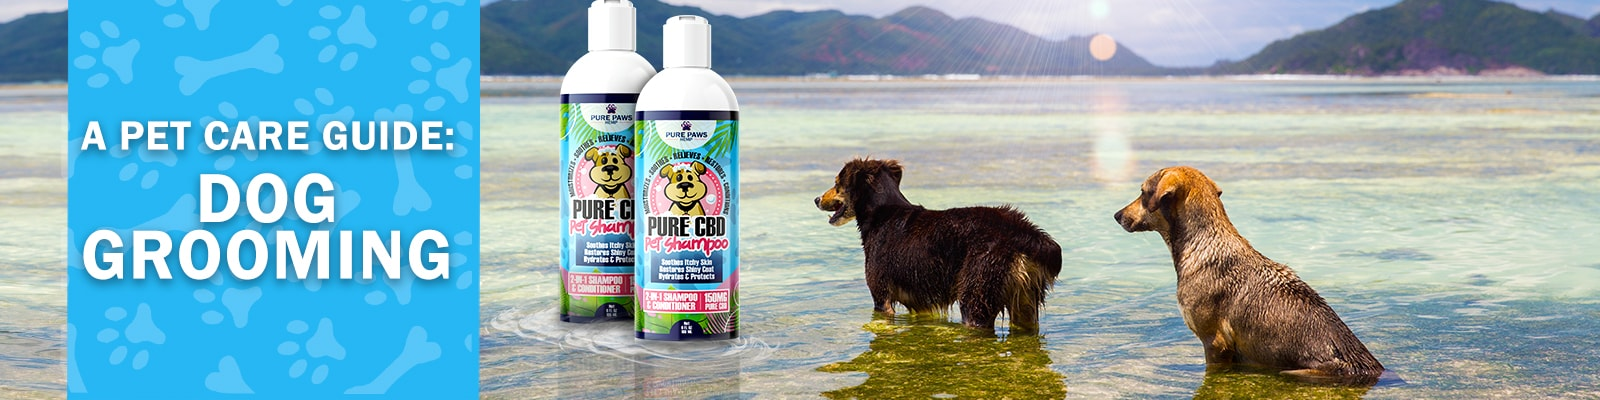 Pure Paws Hemp Shampoo for Dog Grooming Pet Care Guide